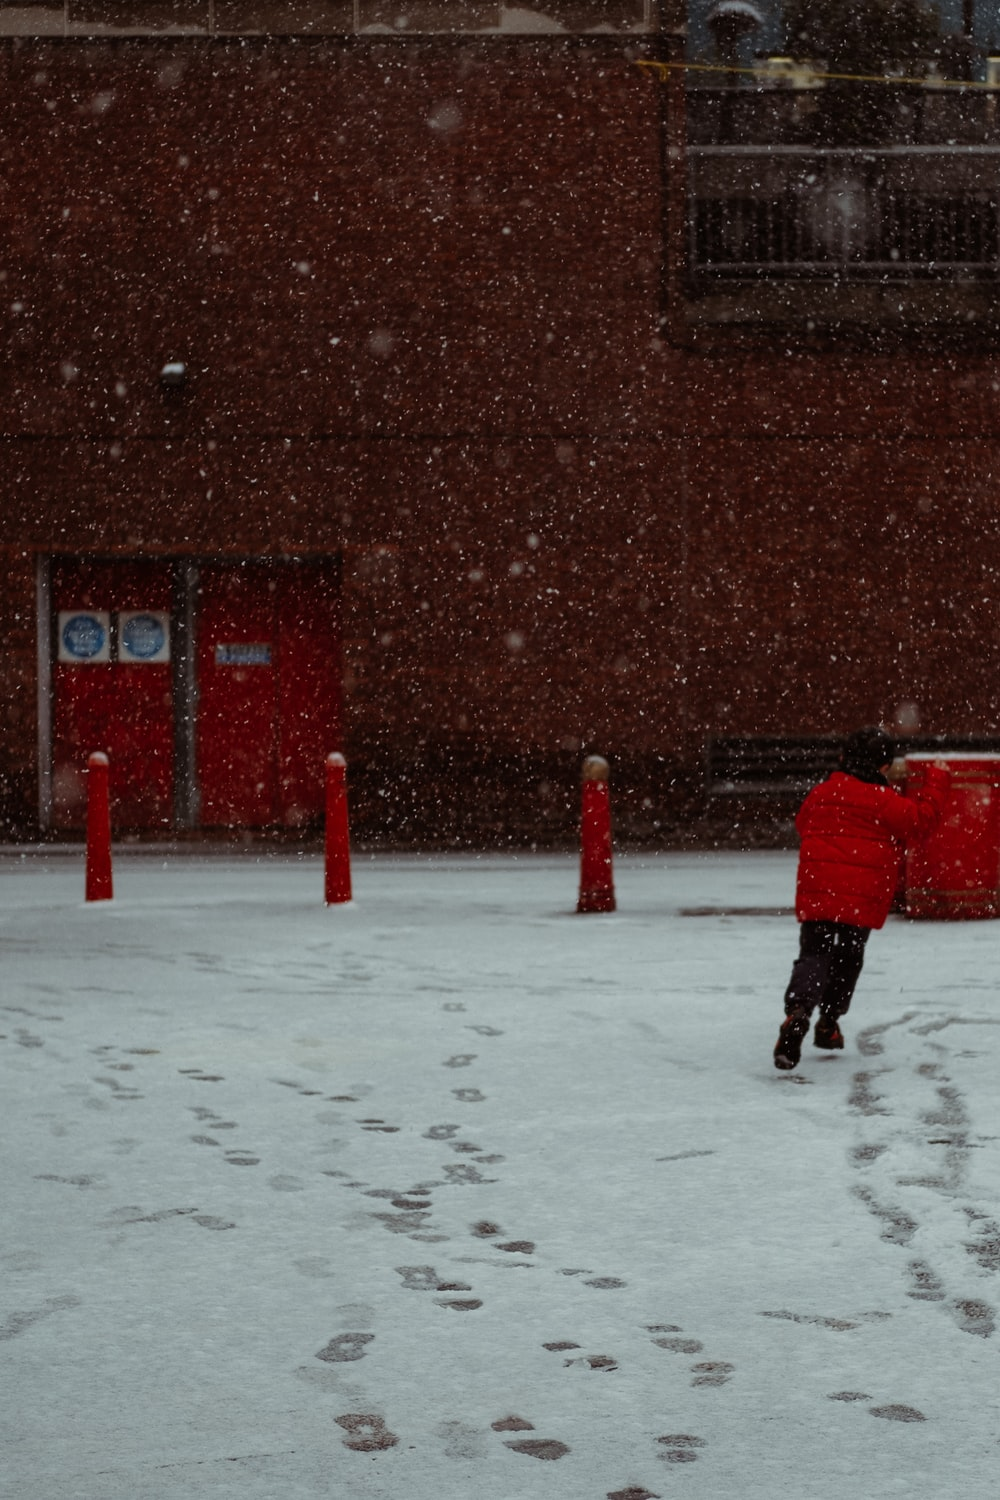 person in red jacket walking on snow covered ground